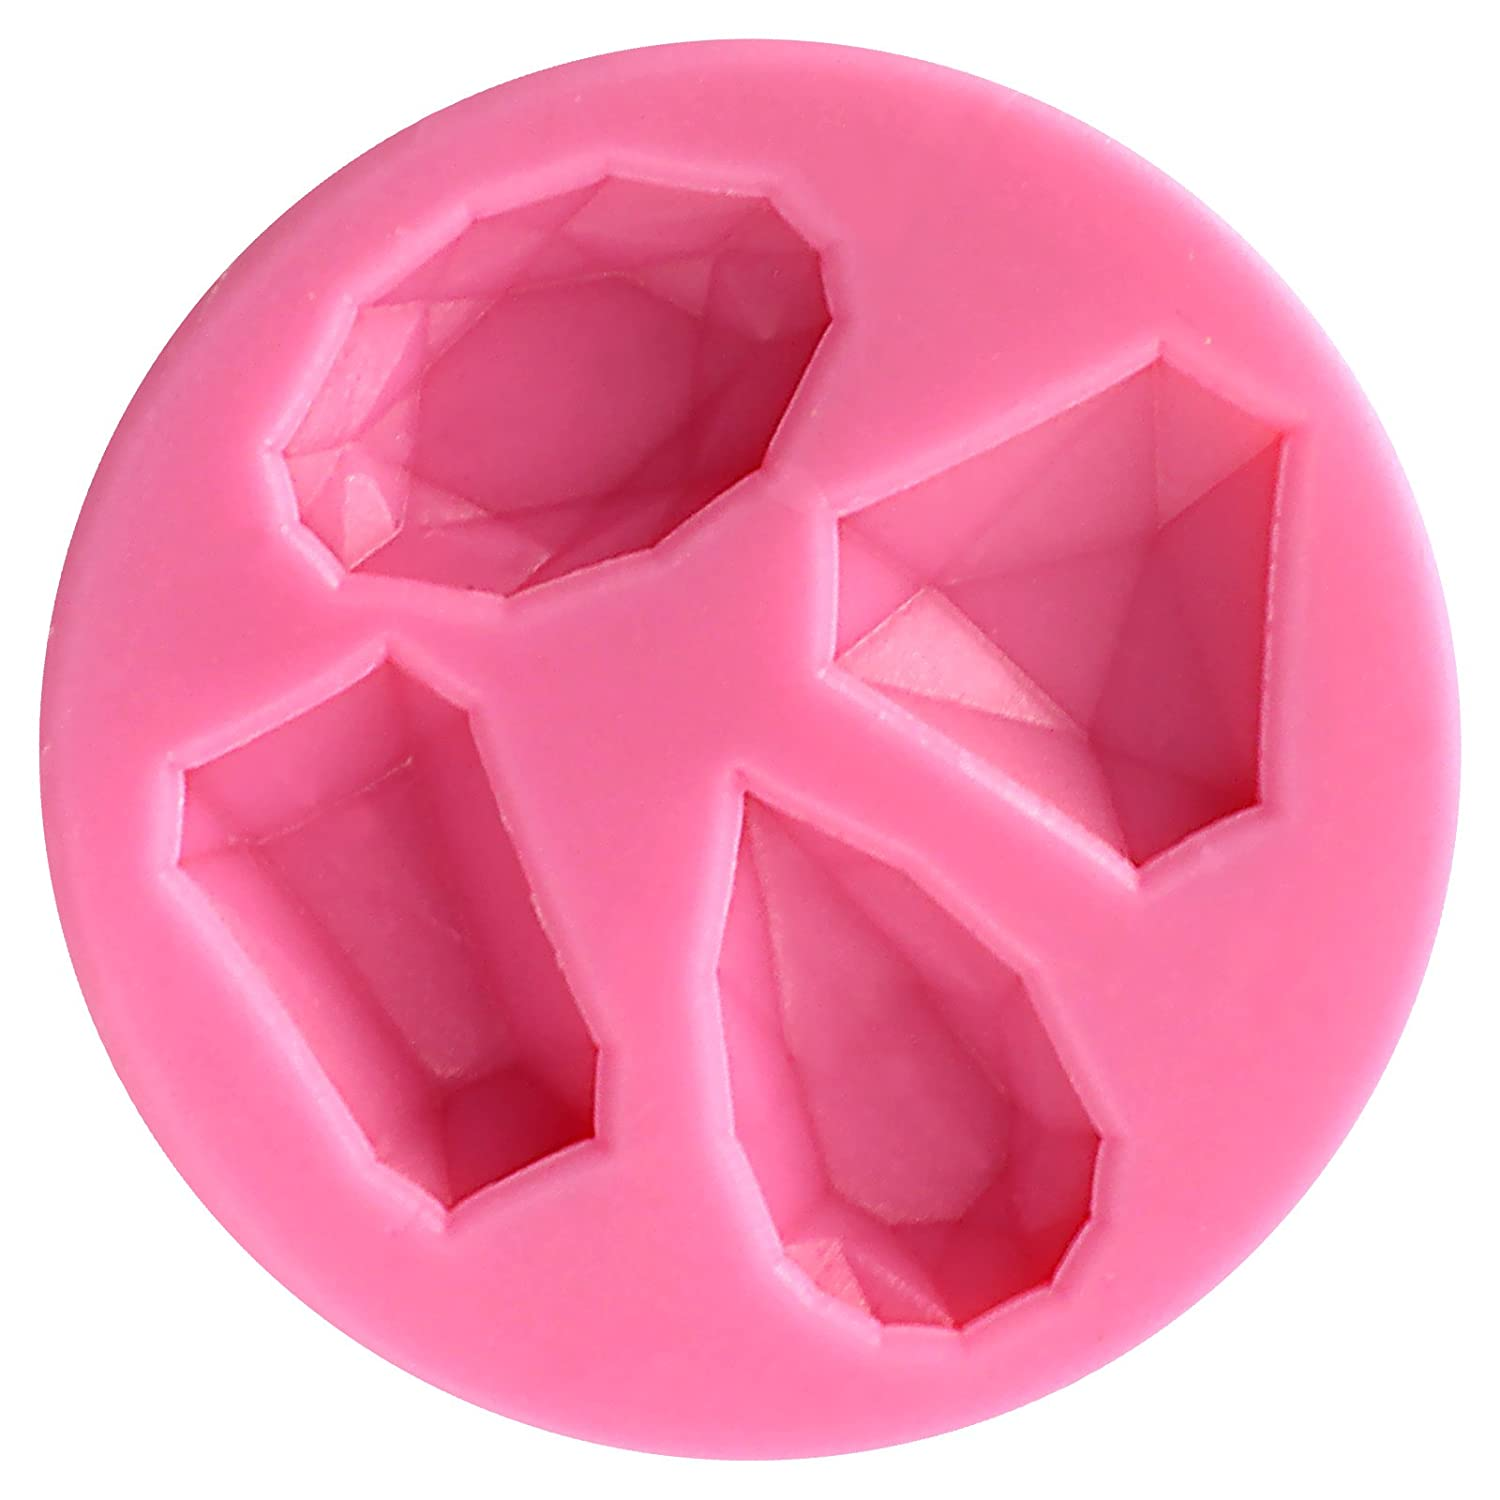 Funshowcase 4 Cavities Gems Silicone Mold for Cake Decorating, Crafting, Polymer Clay, Resin